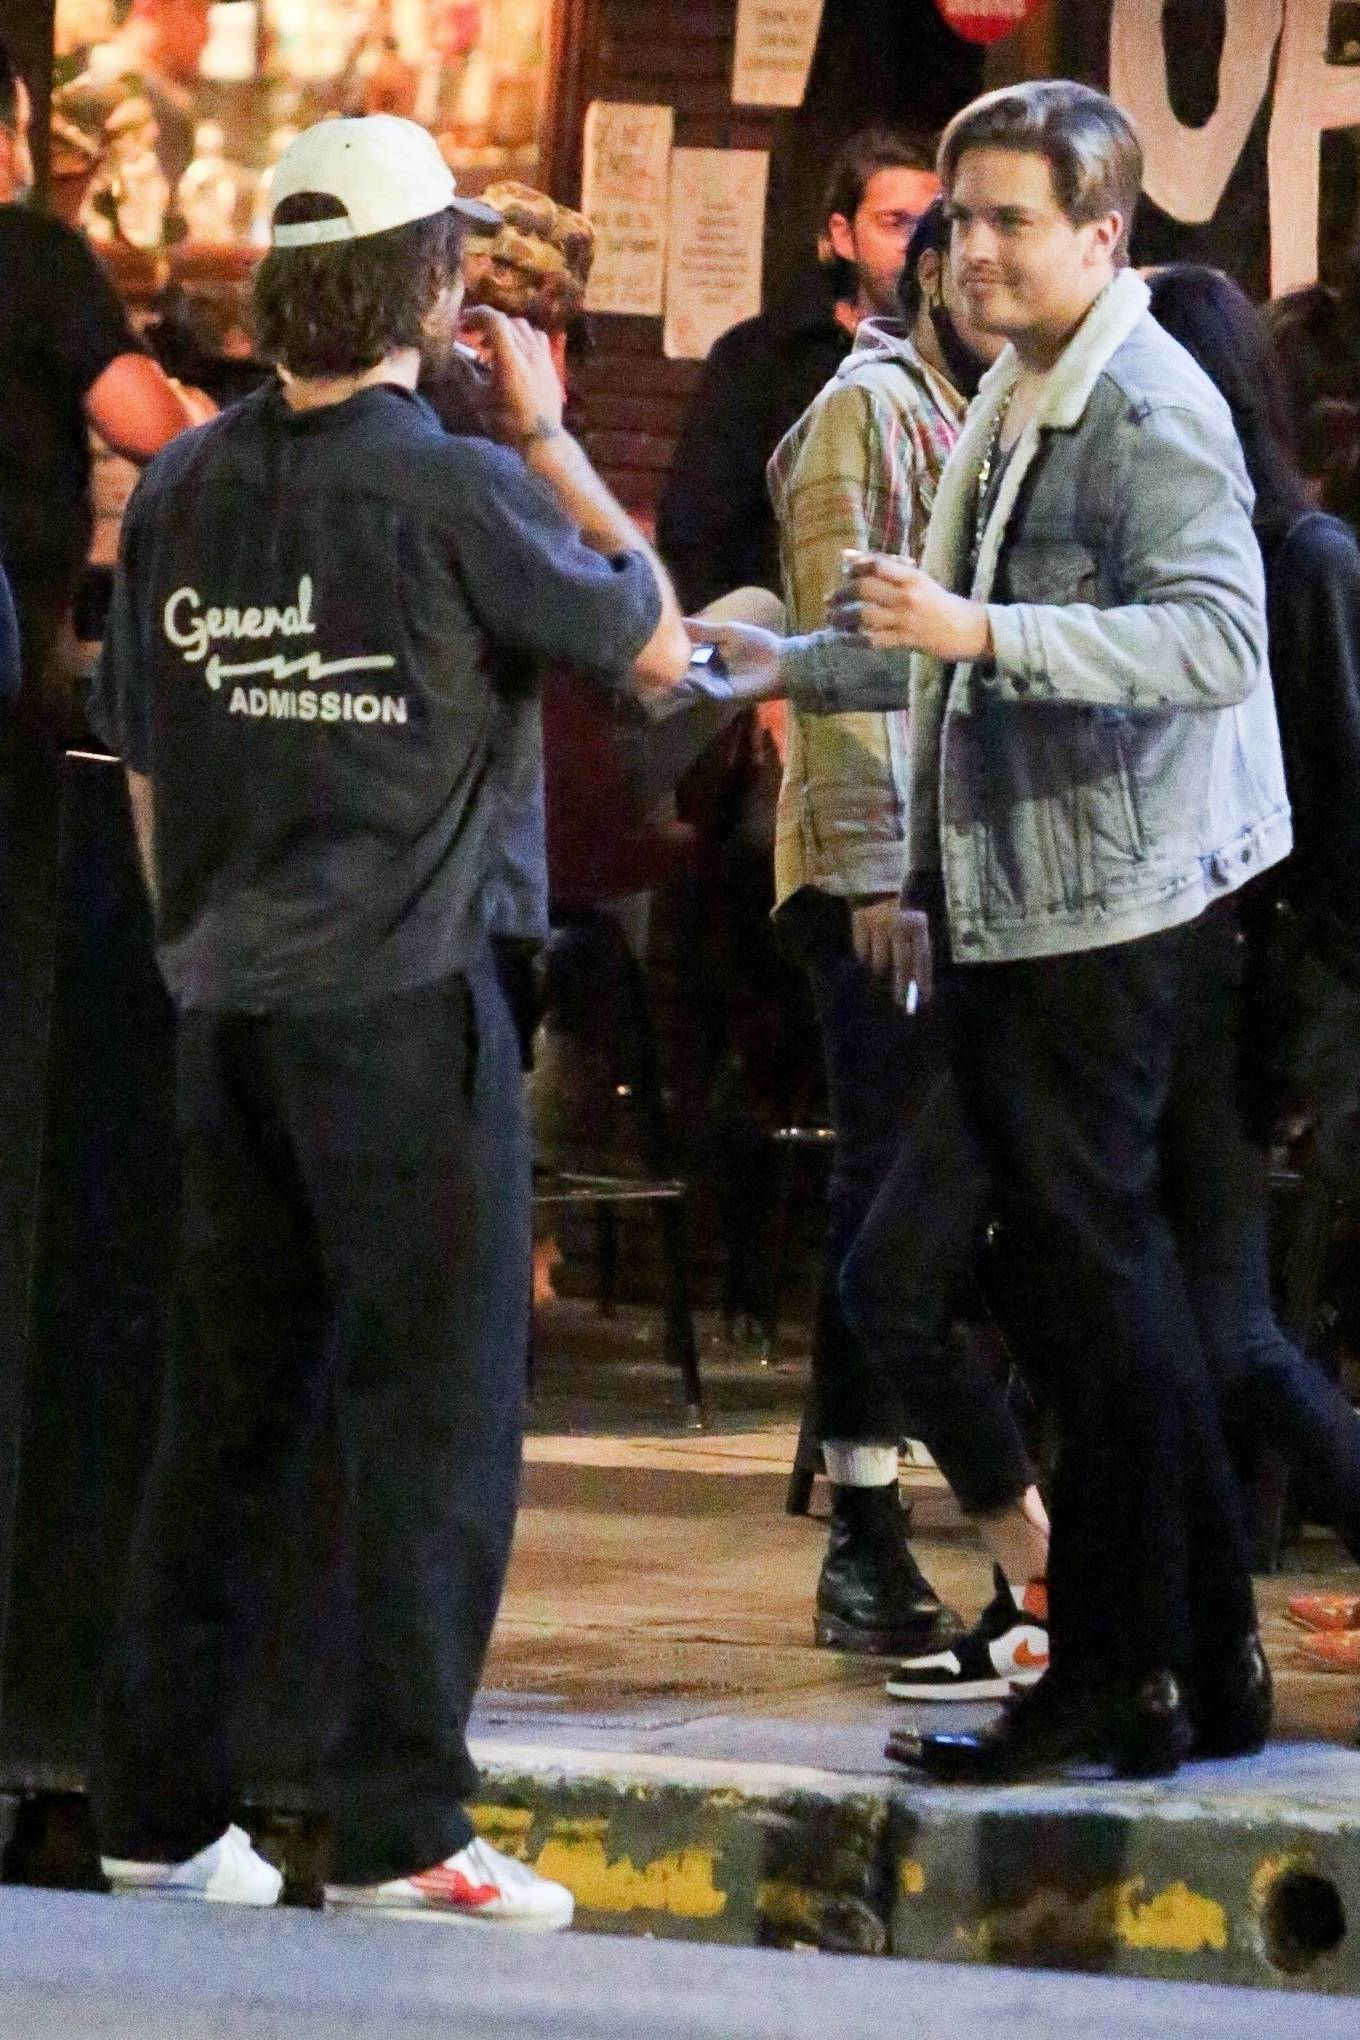 Barbara Palvin 2020 : Dylan Sprouse and Barbara Palvin with KJ Apa and Stella Maxwell – Night out in Silverlake -13